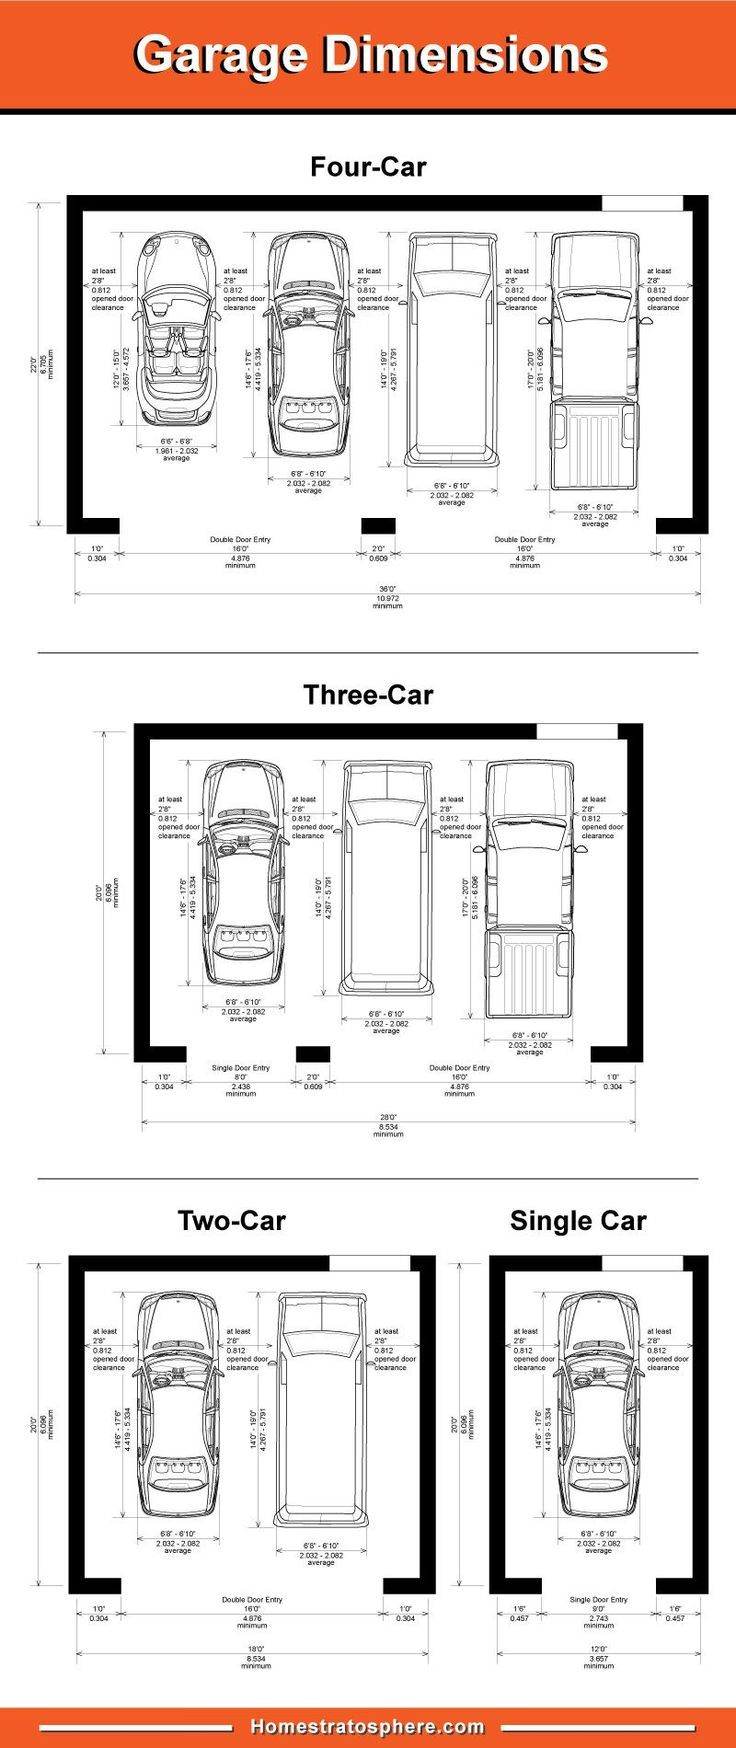 Standard Garage Dimensions for 1, 2, 3 and 4 Car Garages